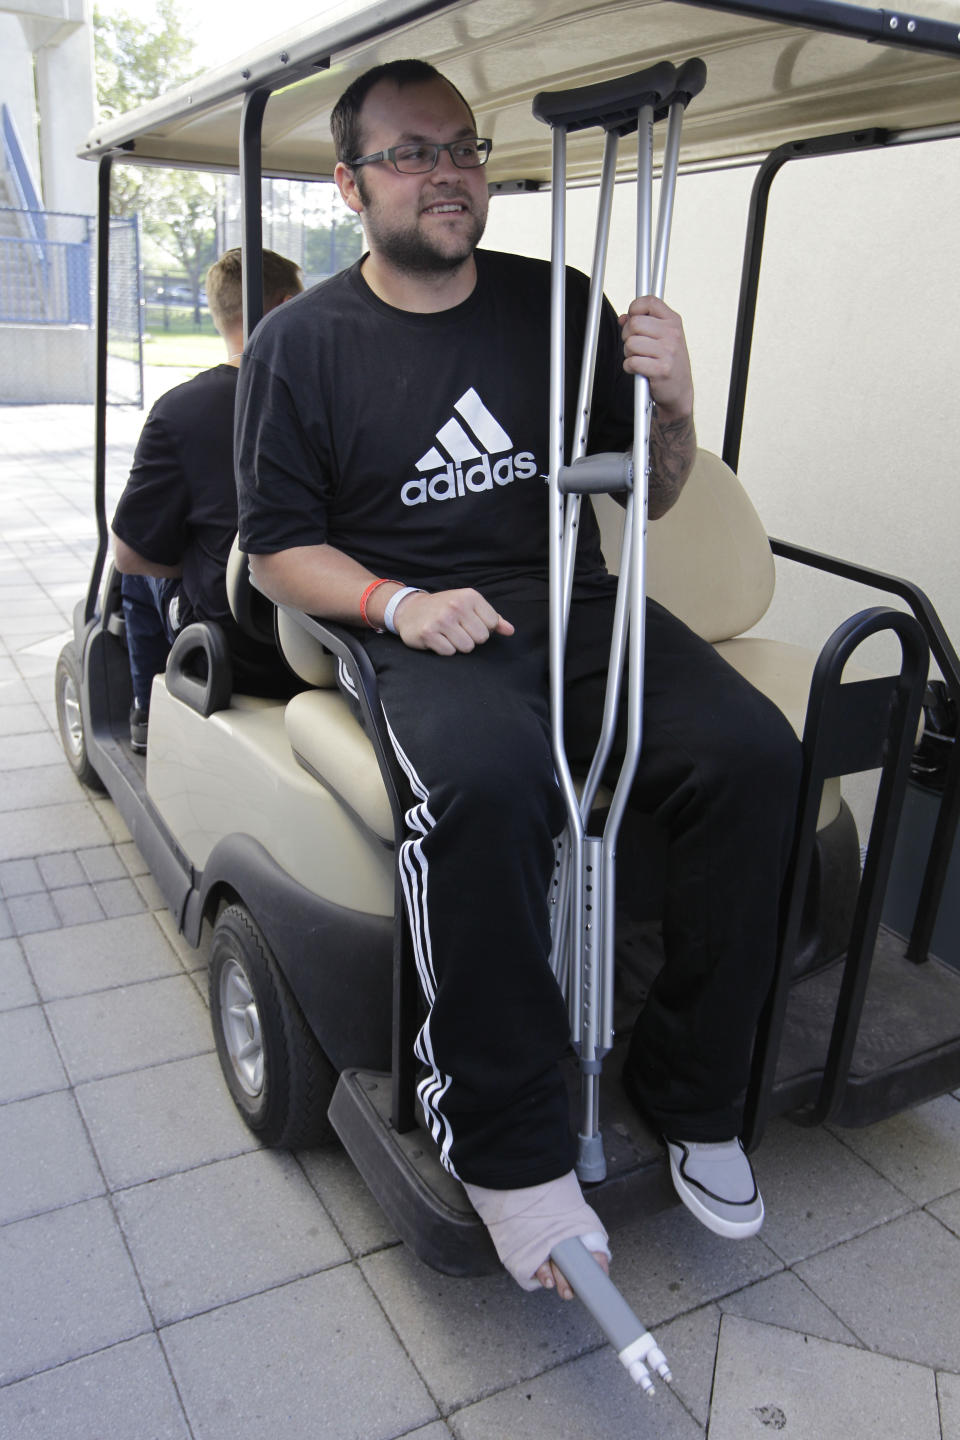 New York Yankees relief pitcher Joba Chamberlain gets a ride on a golf cart after speaking at a news conference in Tampa, Fla., Tuesday, March 27, 2012. Chamberlain injured his right ankle while bouncing on a trampoline during play with his son. (AP Photo/Kathy Willens)